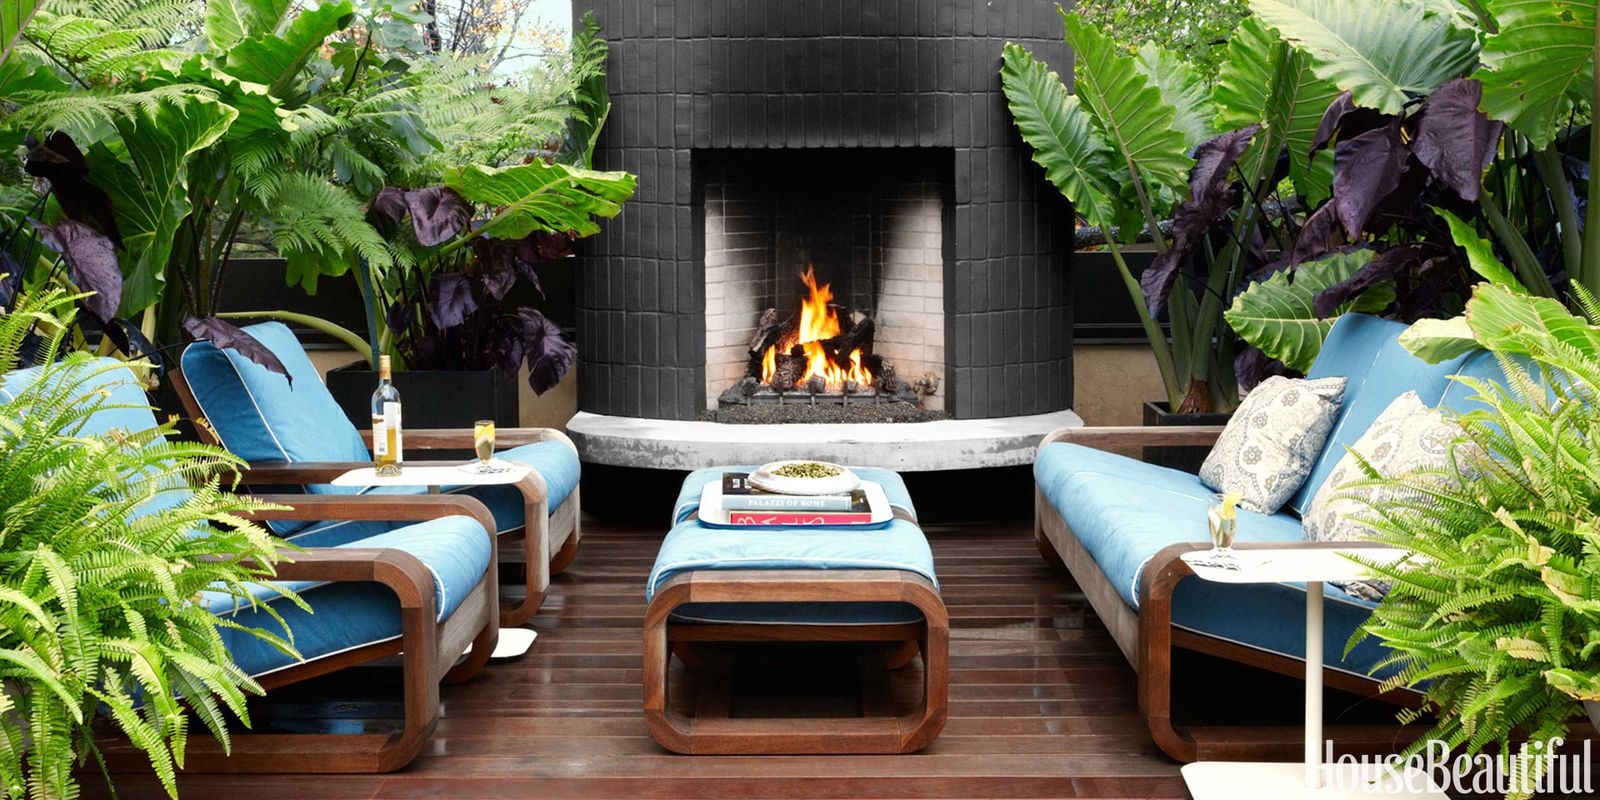 Roof deck house beautiful pinterest favorite pins june for Decorating outdoor spaces